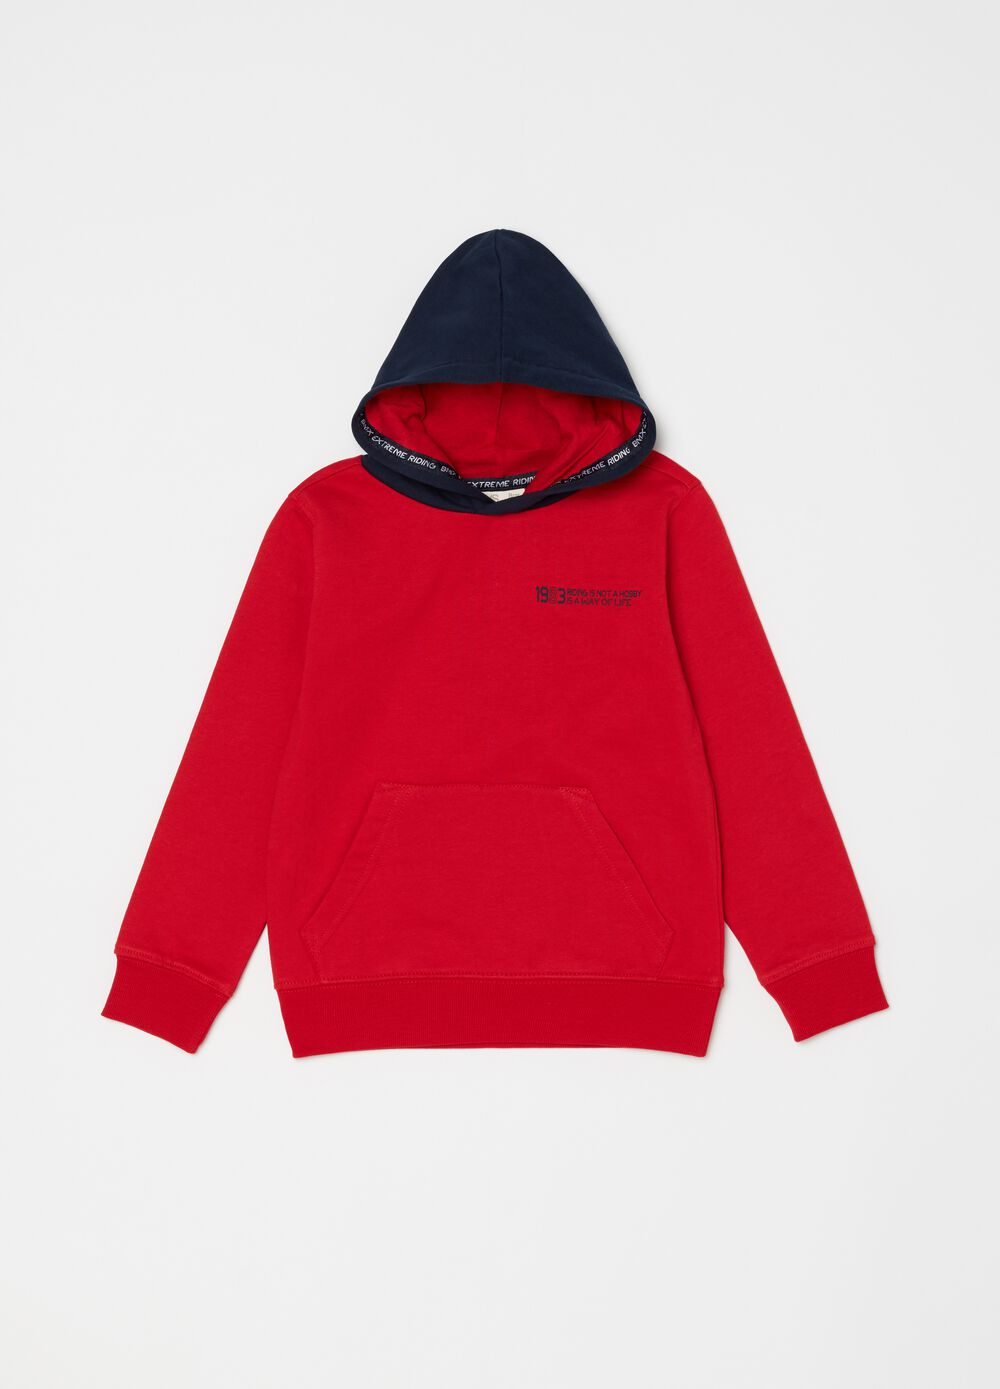 Cotton sweatshirt with hood and pouch pocket